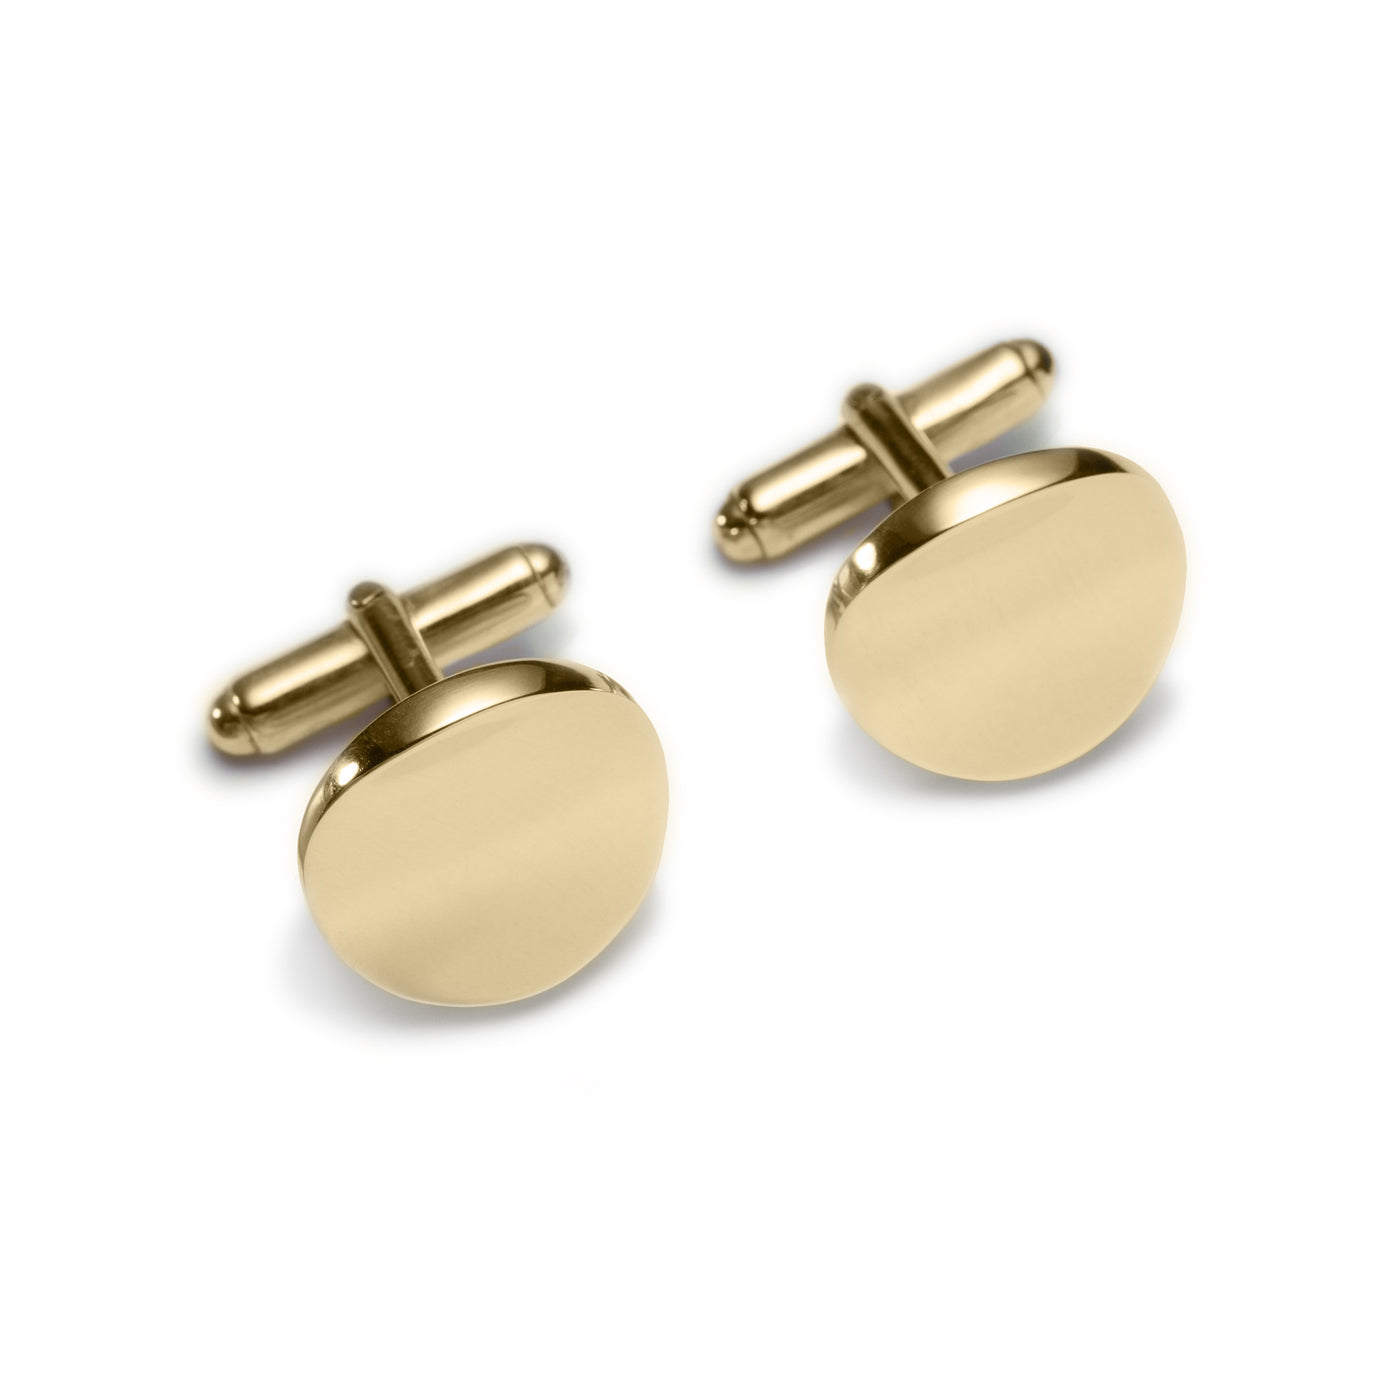 Atlantic Gold Cuff-links